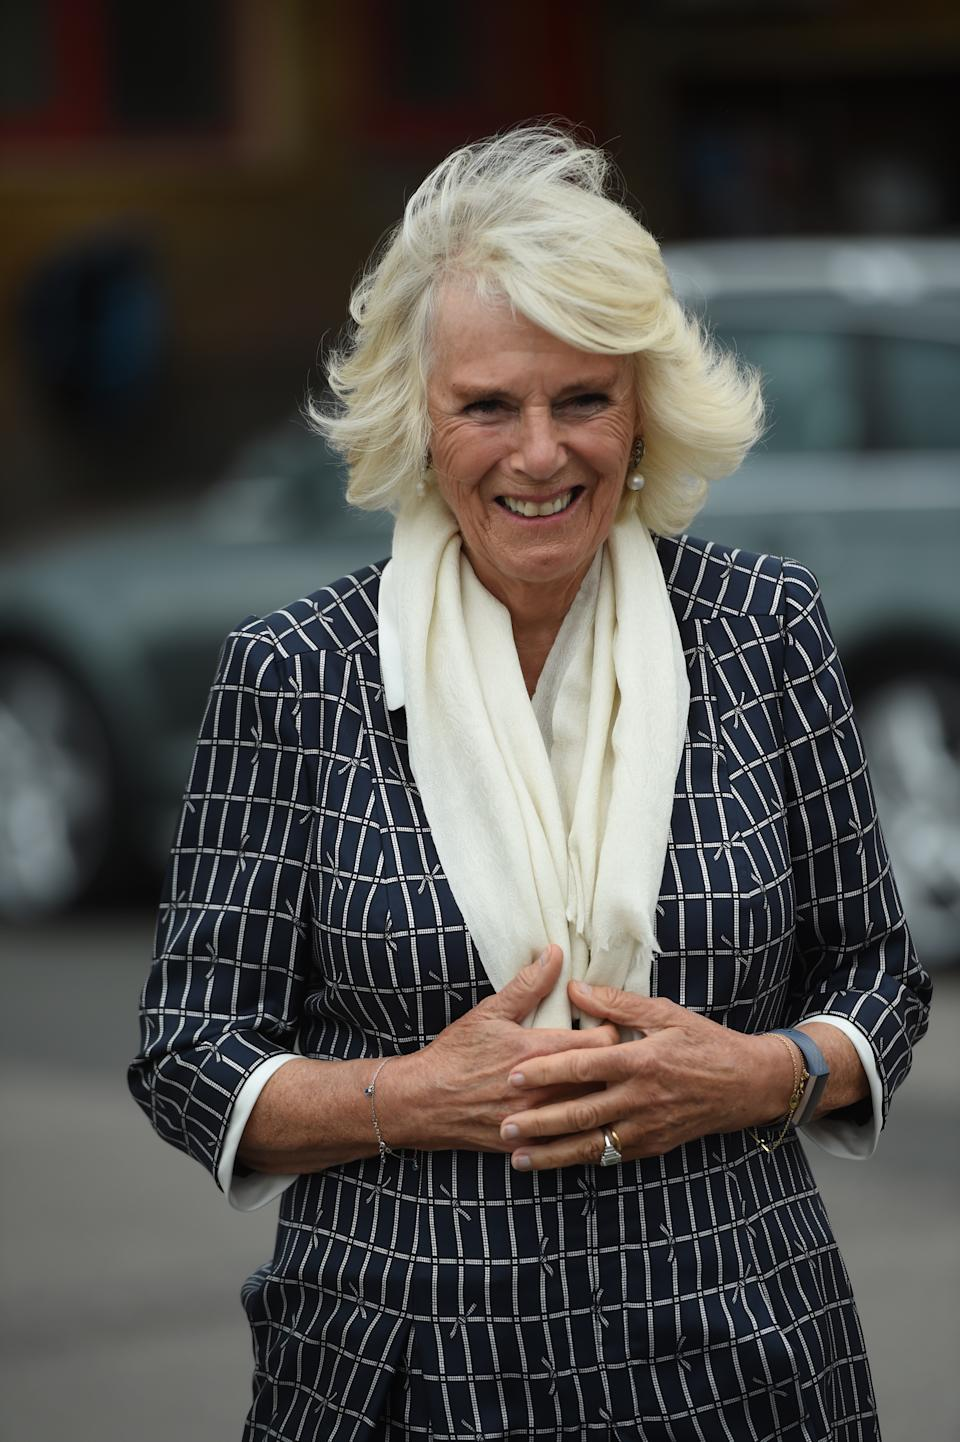 The Duchess of Cornwall meets firefighters, staff from Great Western Hospital and paramedics from South Western Ambulance Service during a visit to Swindon Fire Station in Wiltshire.